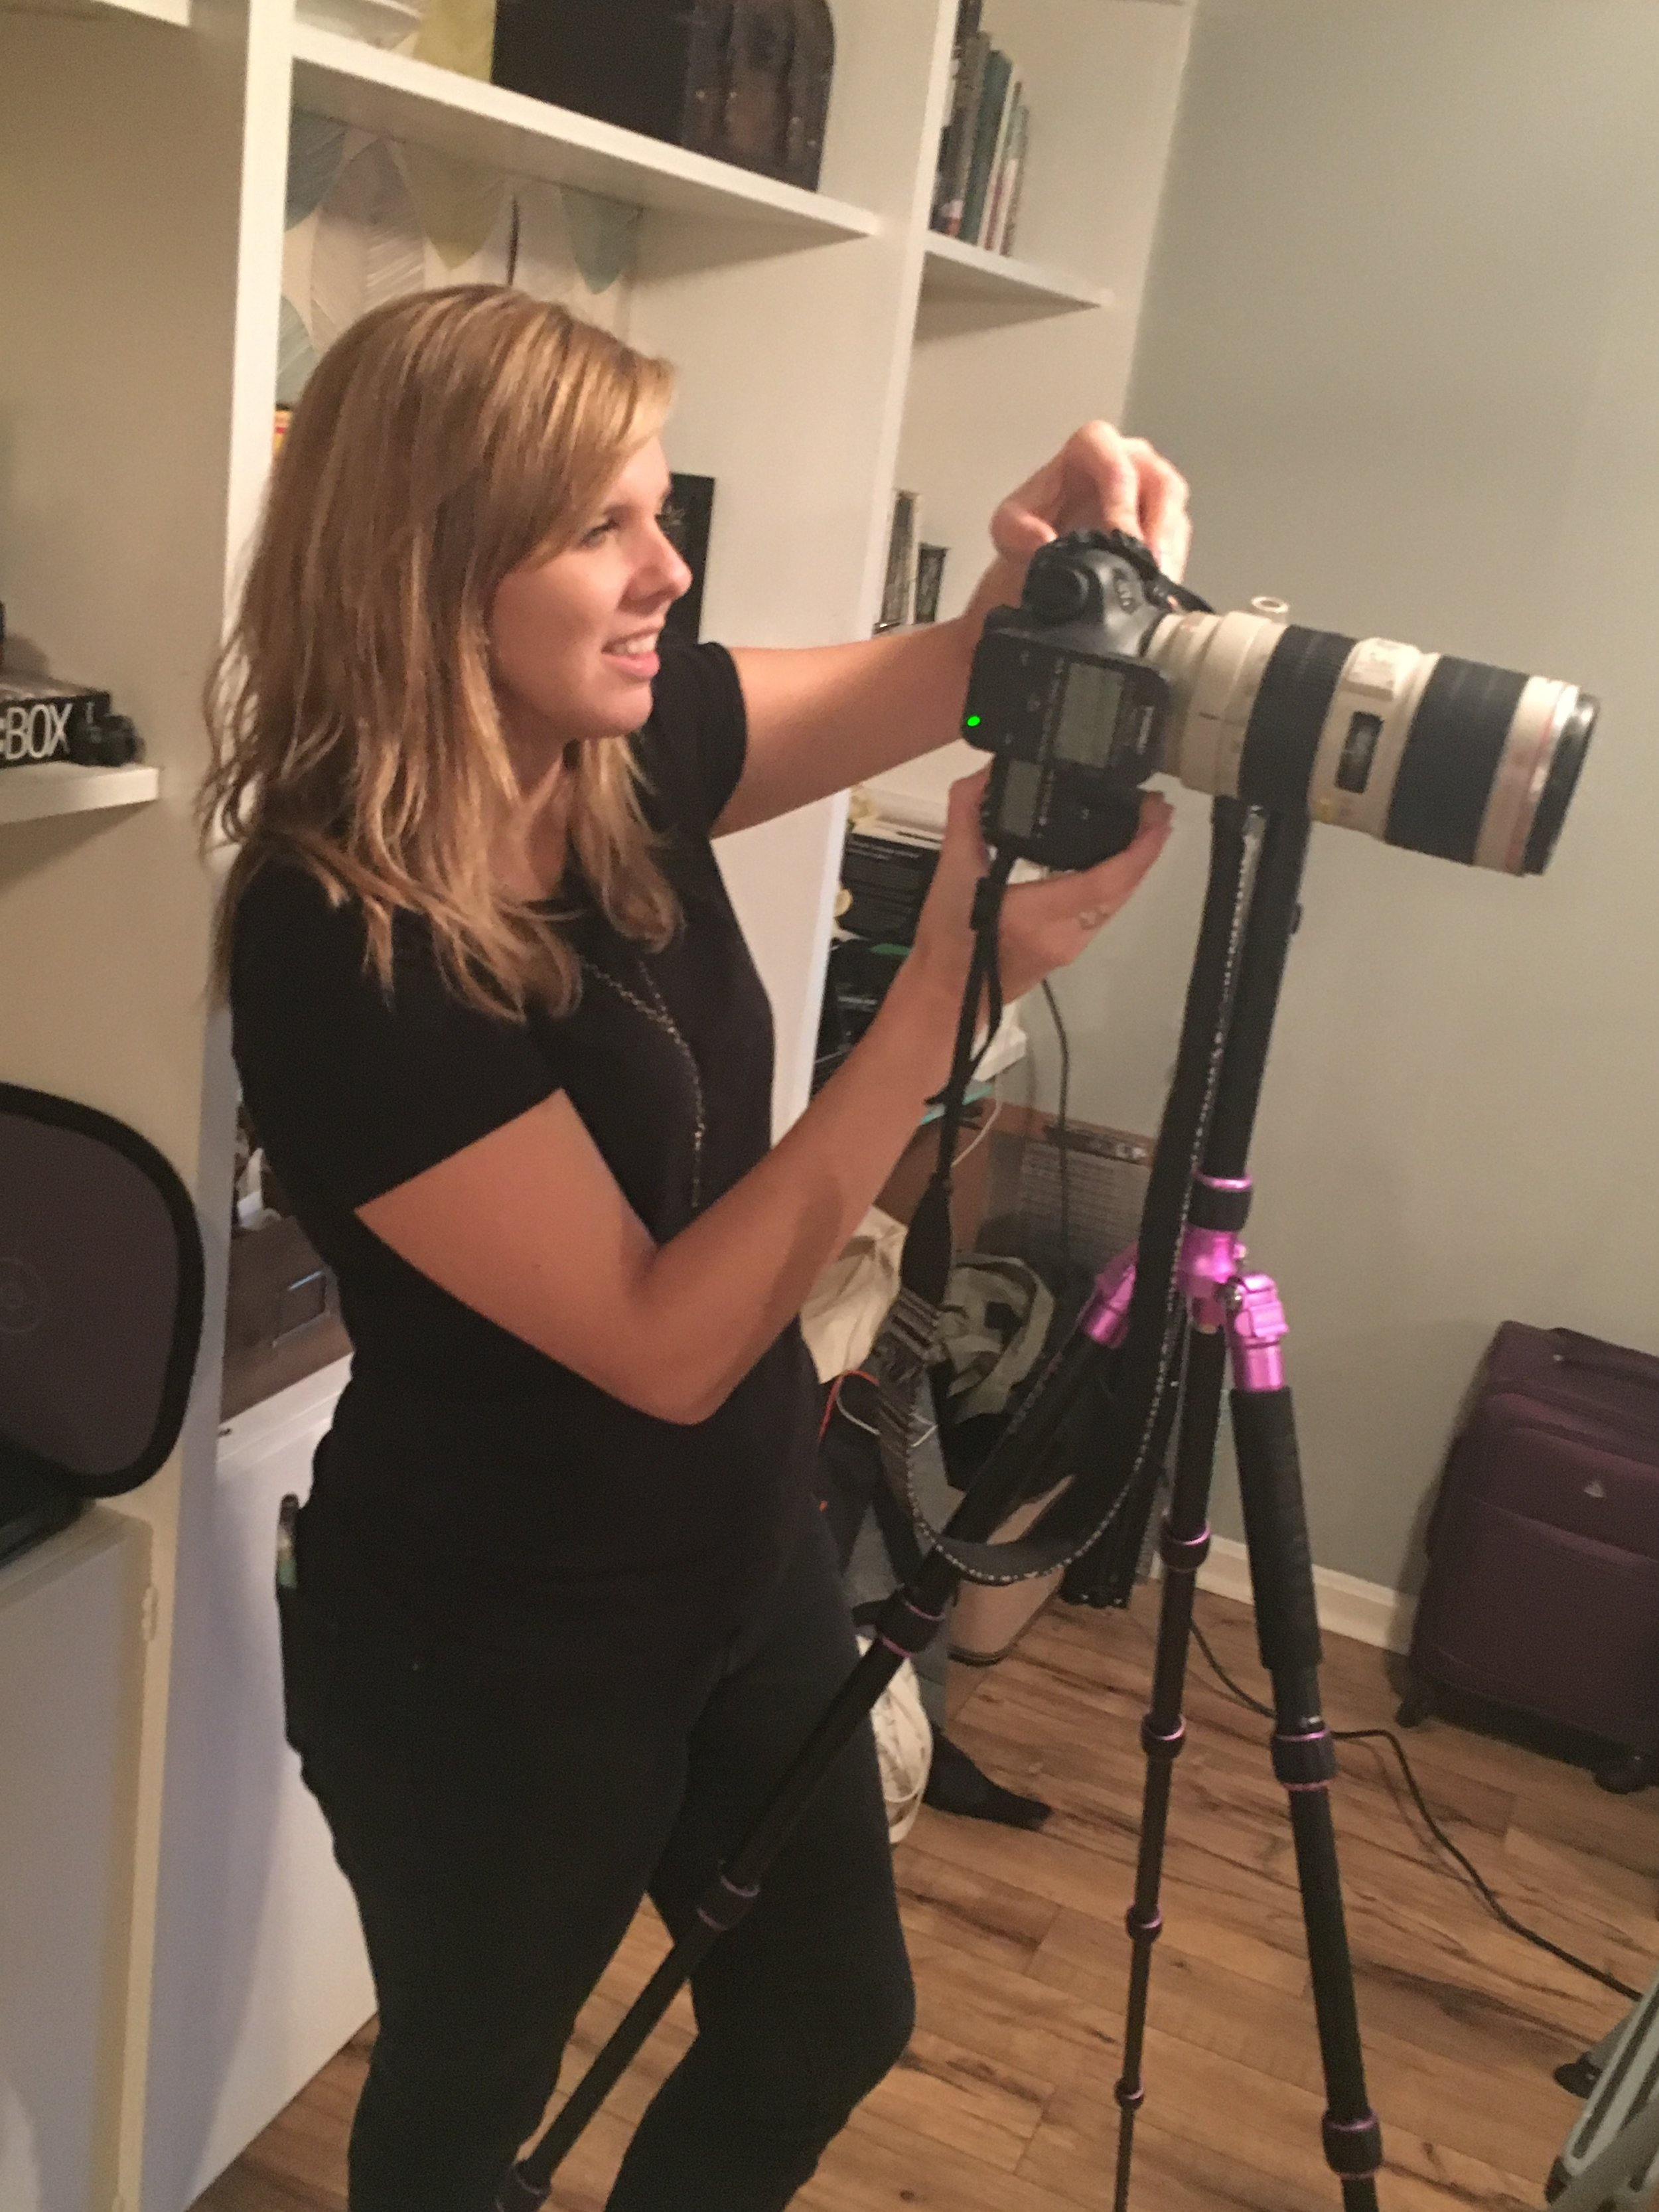 in focus: jenni on camera